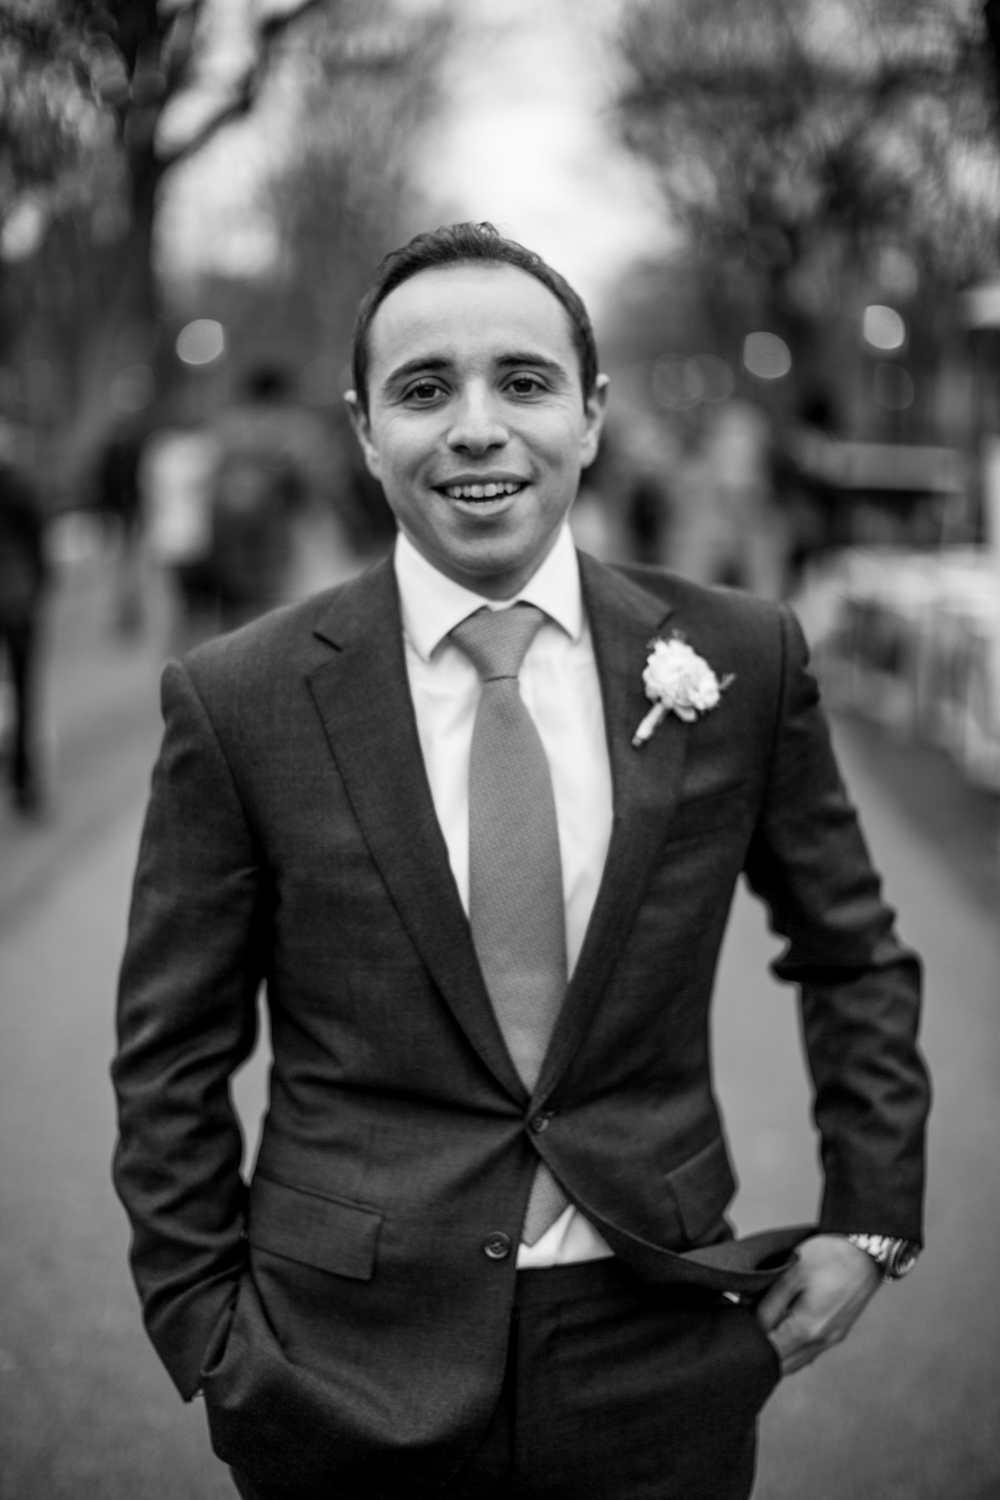 Solo portrait of groom in black and white